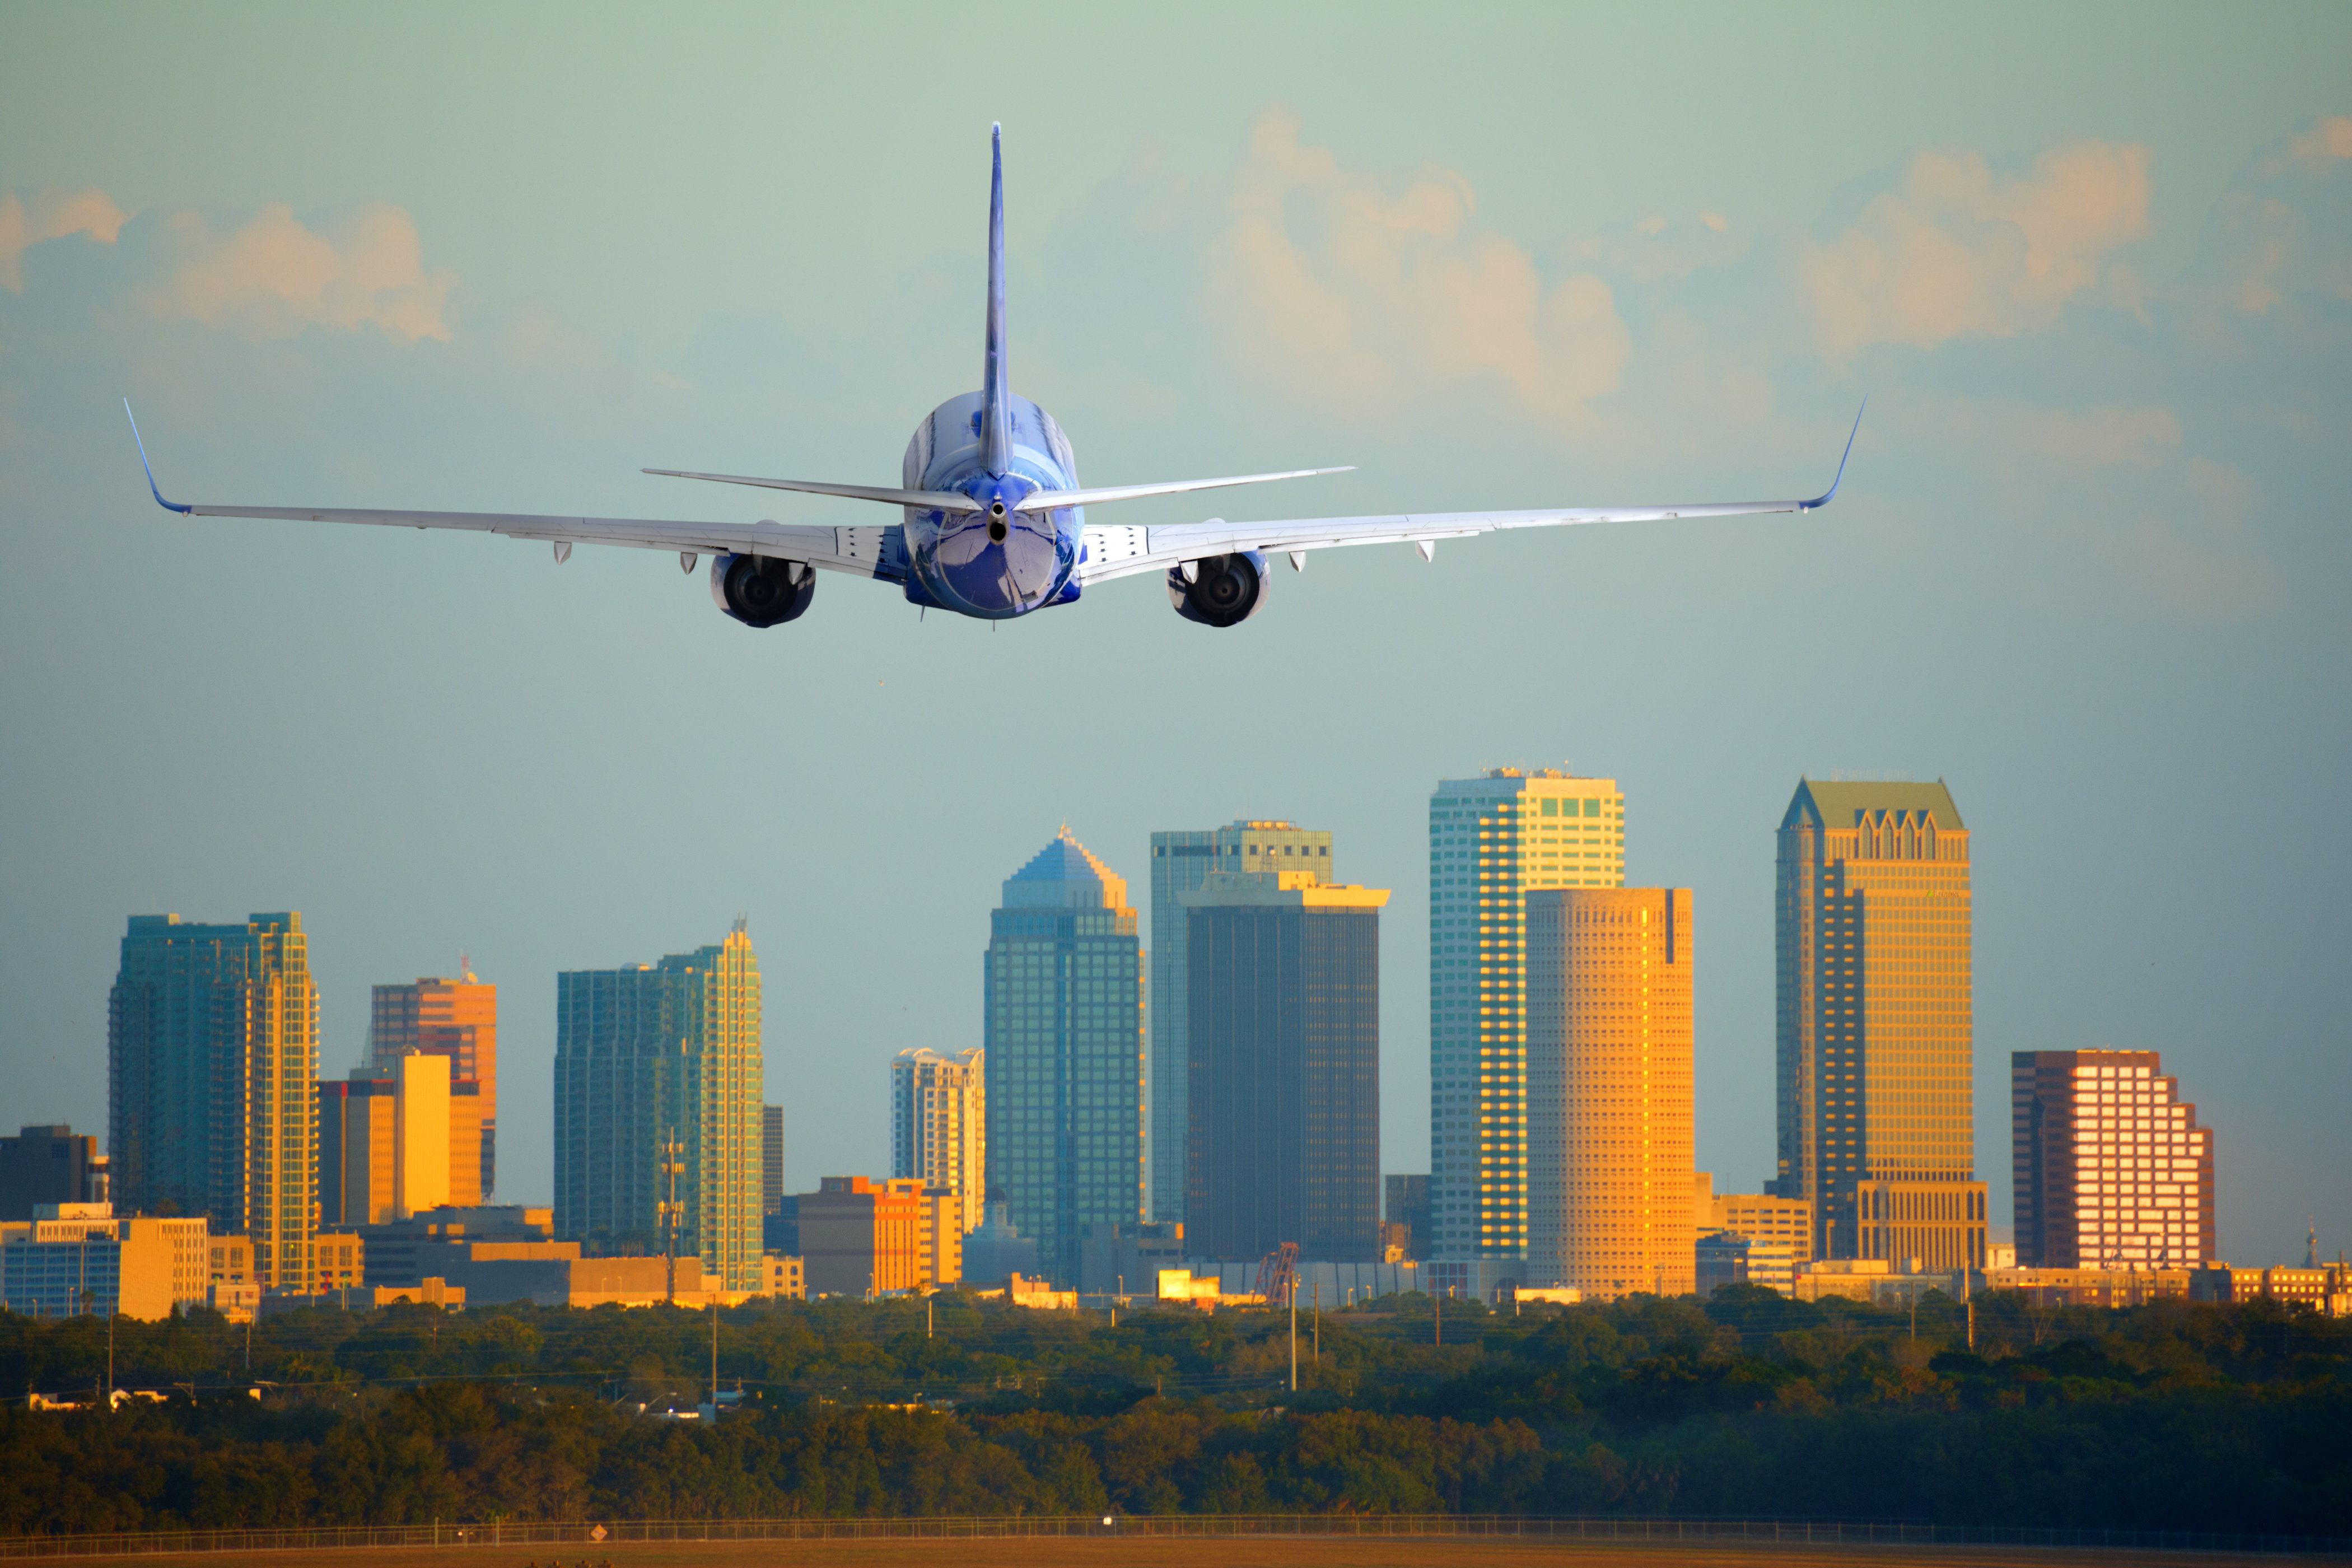 Tampa, Florida, skyline with warm sunset light with a commercial passenger jet airliner plane arriving or departing the International Airport.